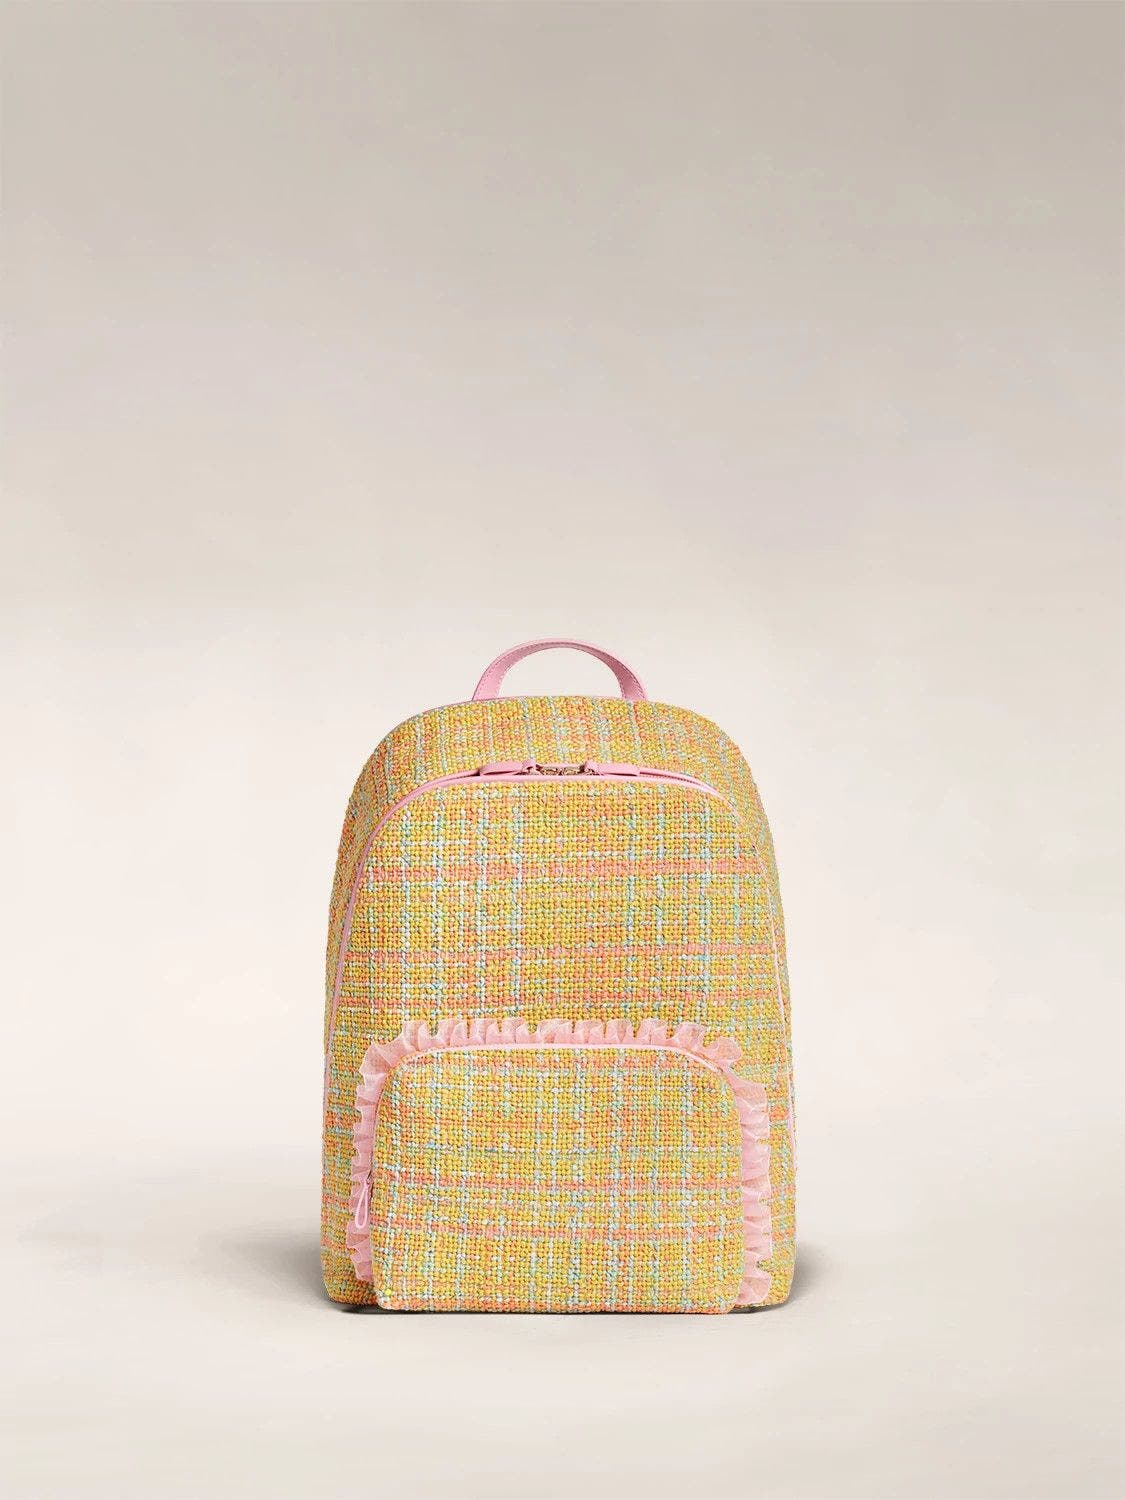 Front view of the Front Pocket Backpack by Tia Adeola in pink and yellow tweed with pink ruffle details